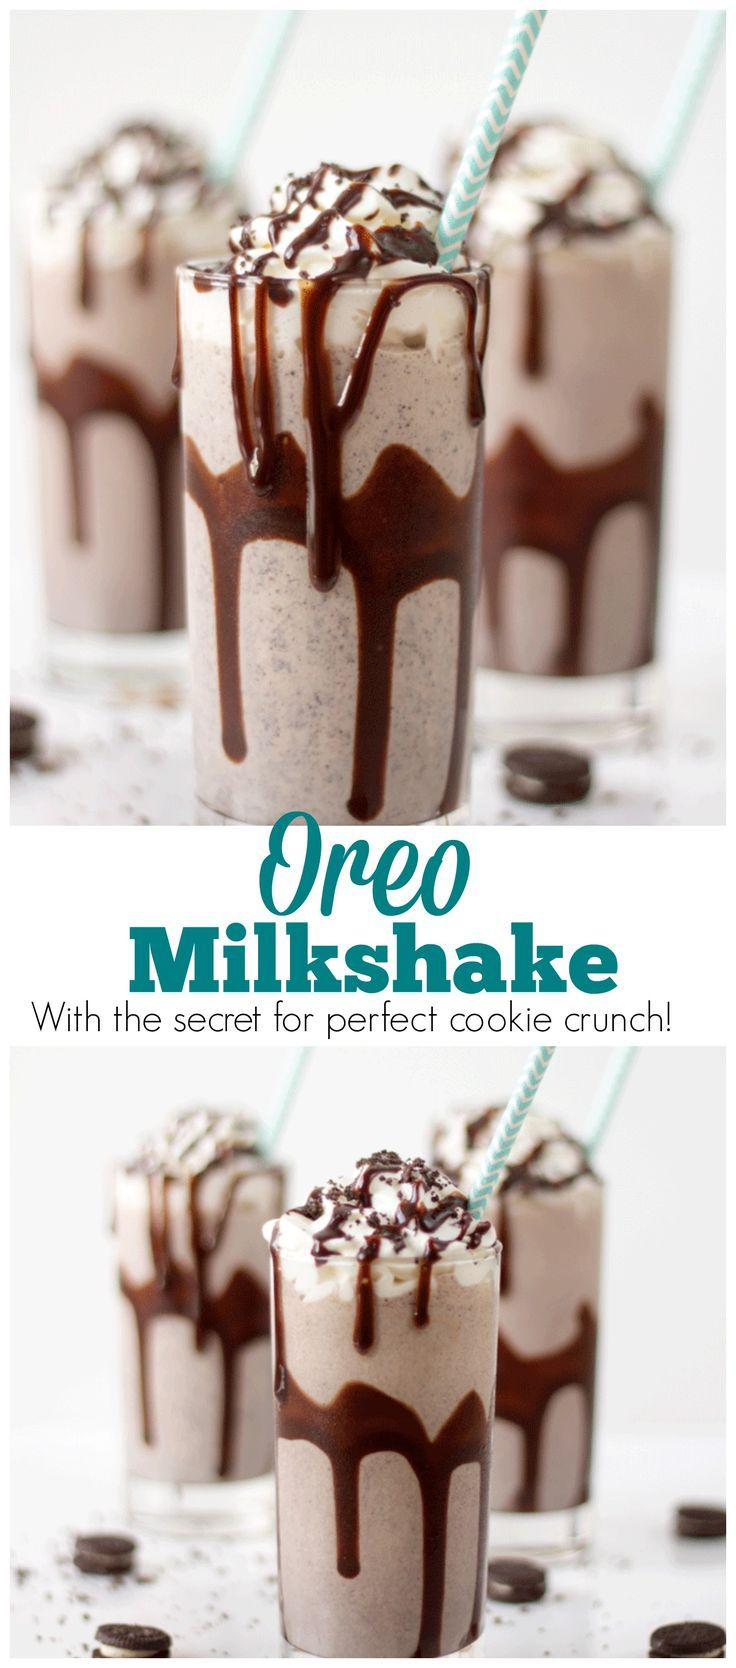 There Is No Need To Get In Your Car And Drive To An Ice Cream Shop To Get An Oreo Milkshake With Thi Oreo Milkshake Oreo Milkshake Recipe Milkshake Recipe Easy